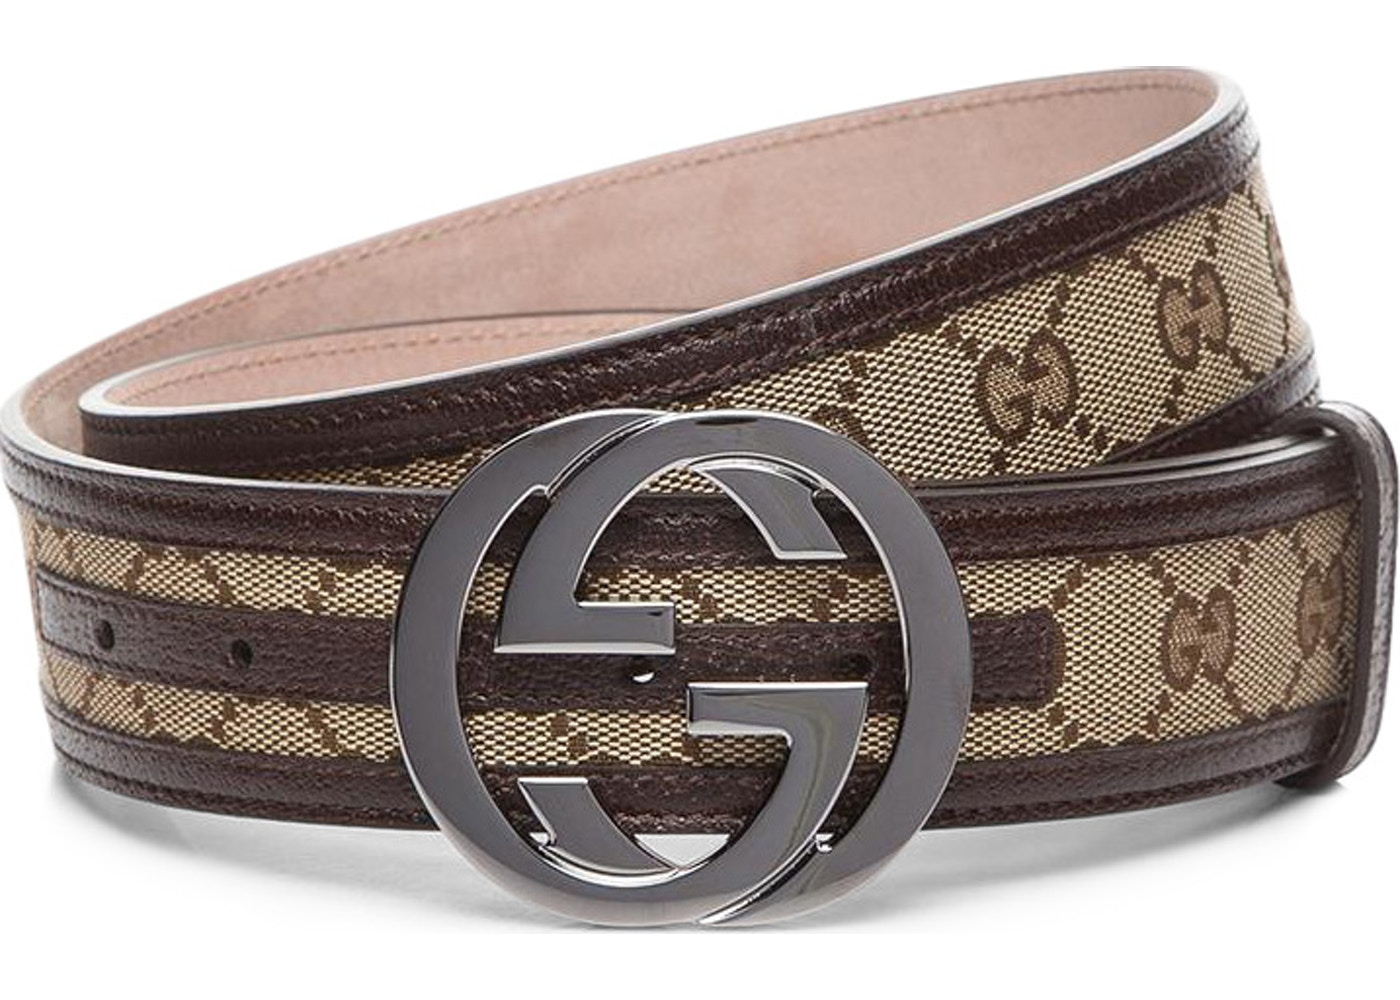 d52bfdf4e93 Gucci Interlocking G Belt Supreme GG Striped Leather Dark Brown ...